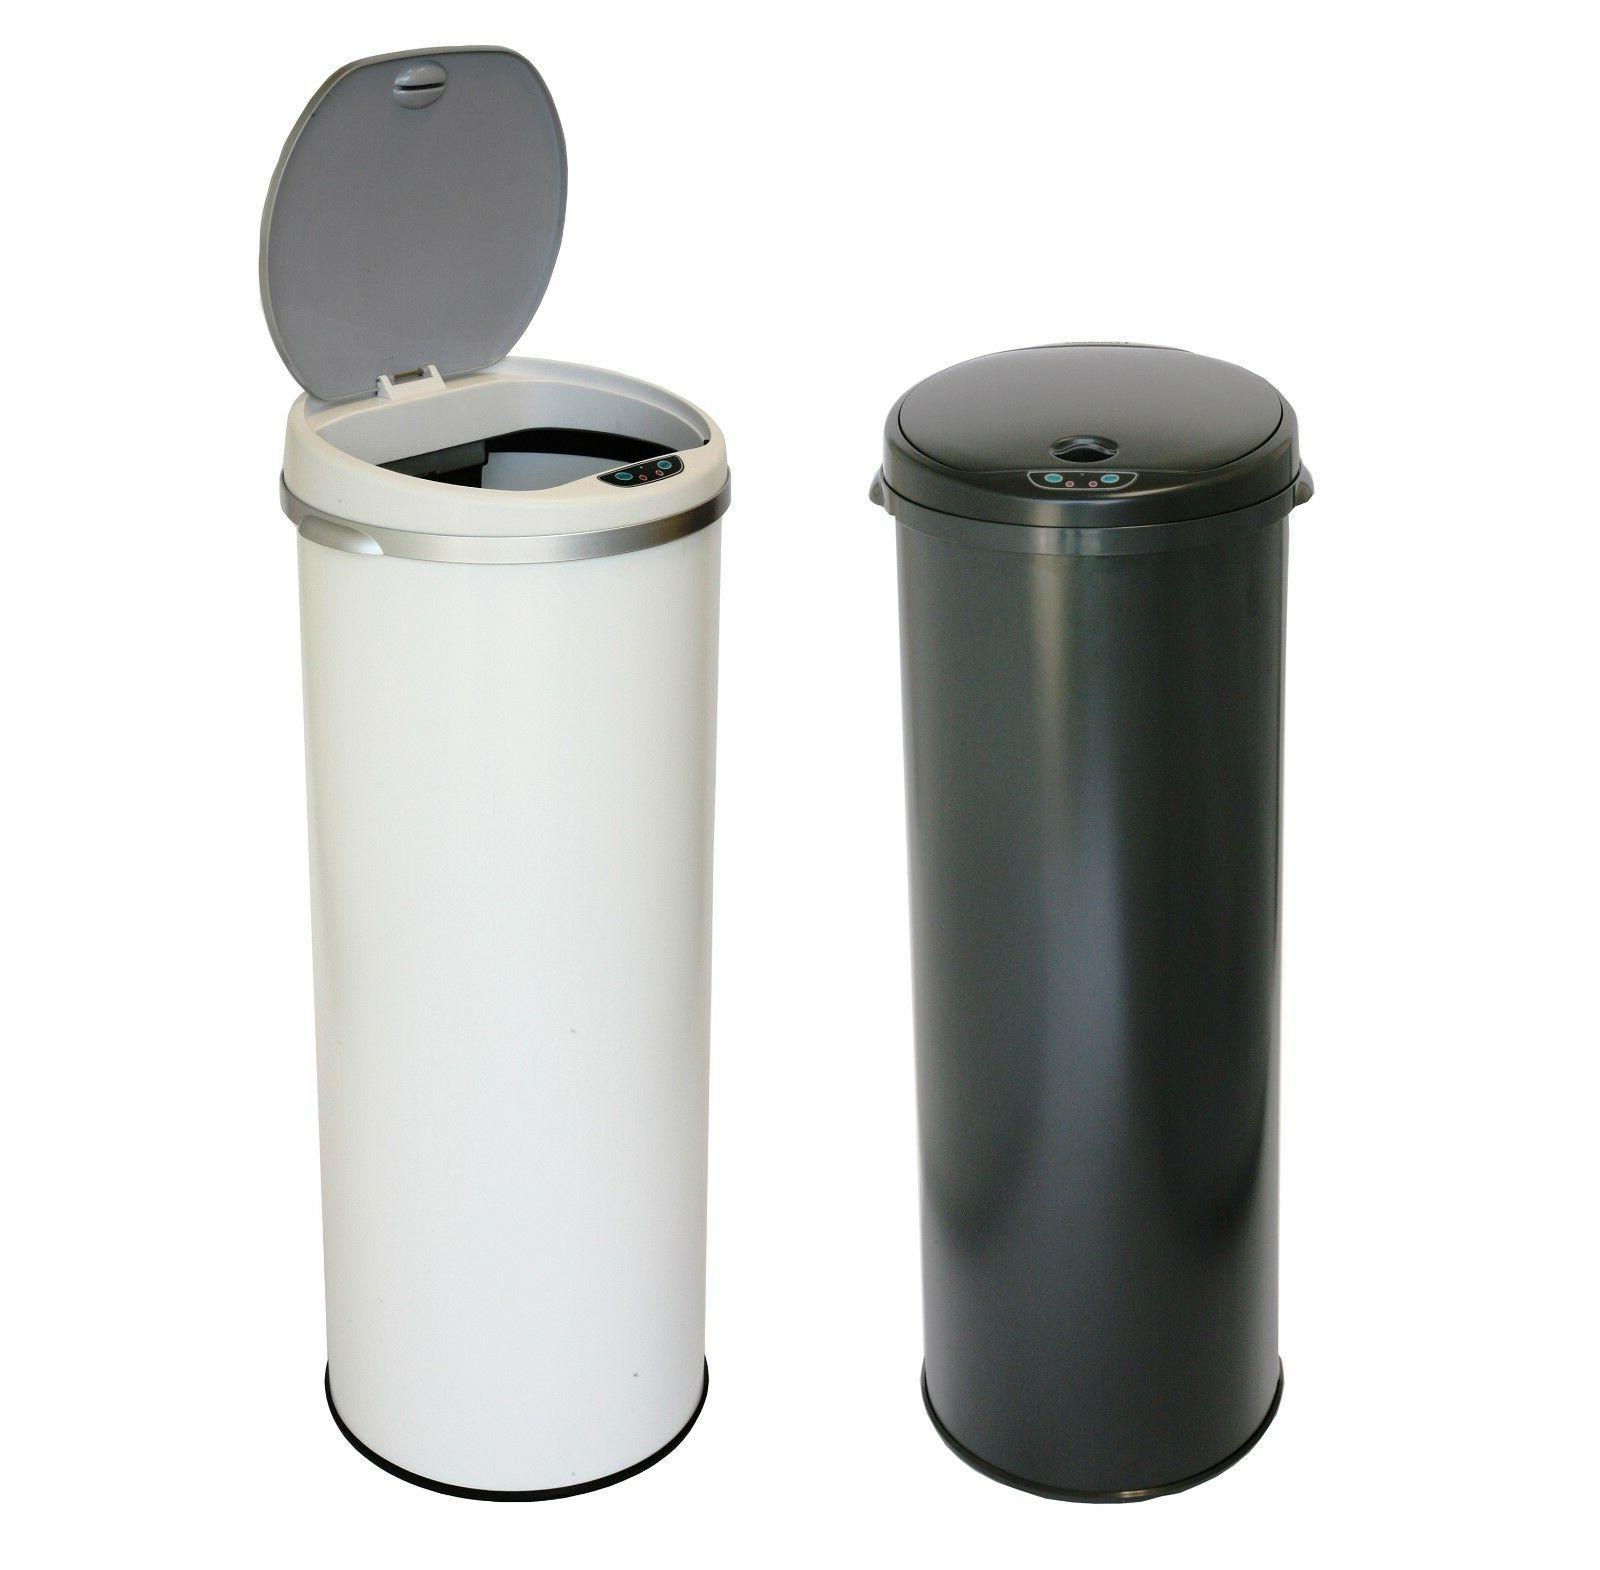 touchless automatic sensor trash can 10 3